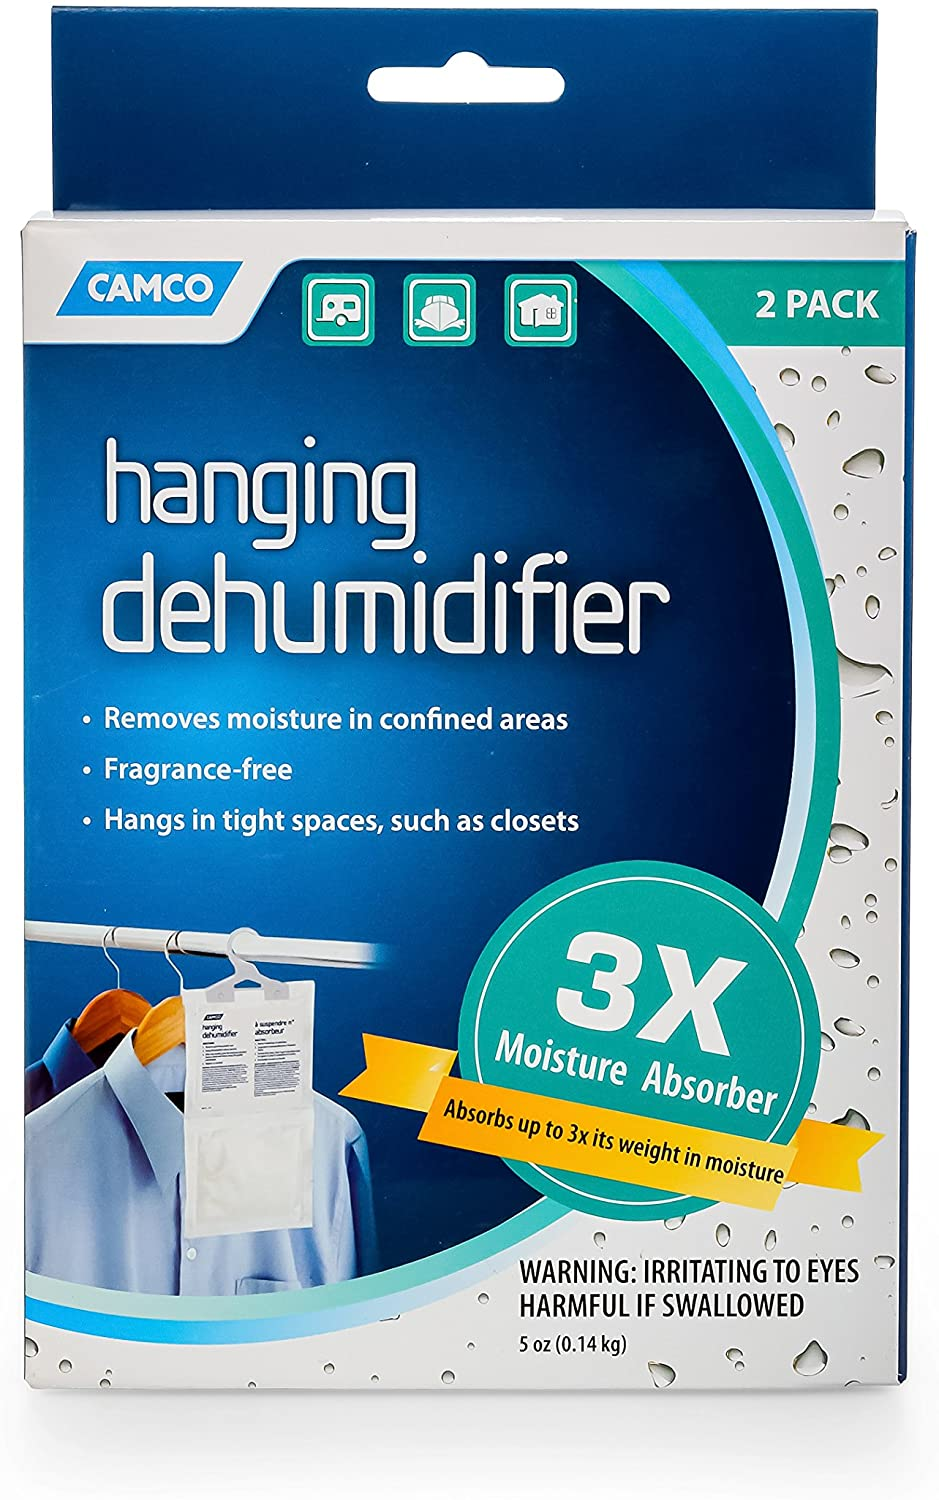 Camco 44286 Fragrance Free Hanging Dehumidifier - Convenient Hook Absorbs Up to 3x Its Weight in Water, Reduces Moisture and Humidity in Closets and Tightly Confined Spaces - 2 Pack